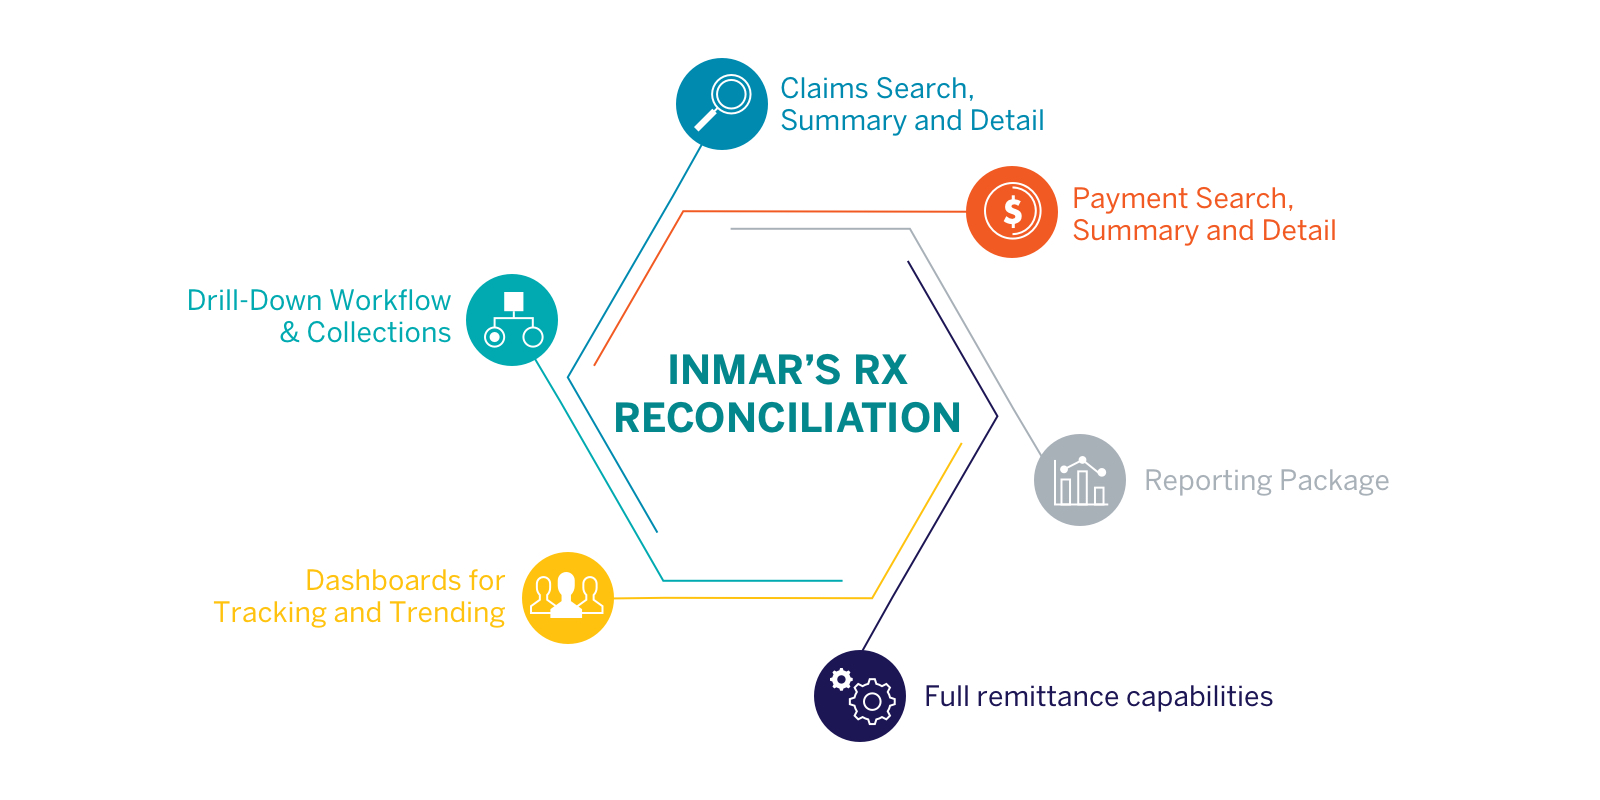 Inmar's Rx Reconciliation is a robust system that is used to process over one billion claims annually.